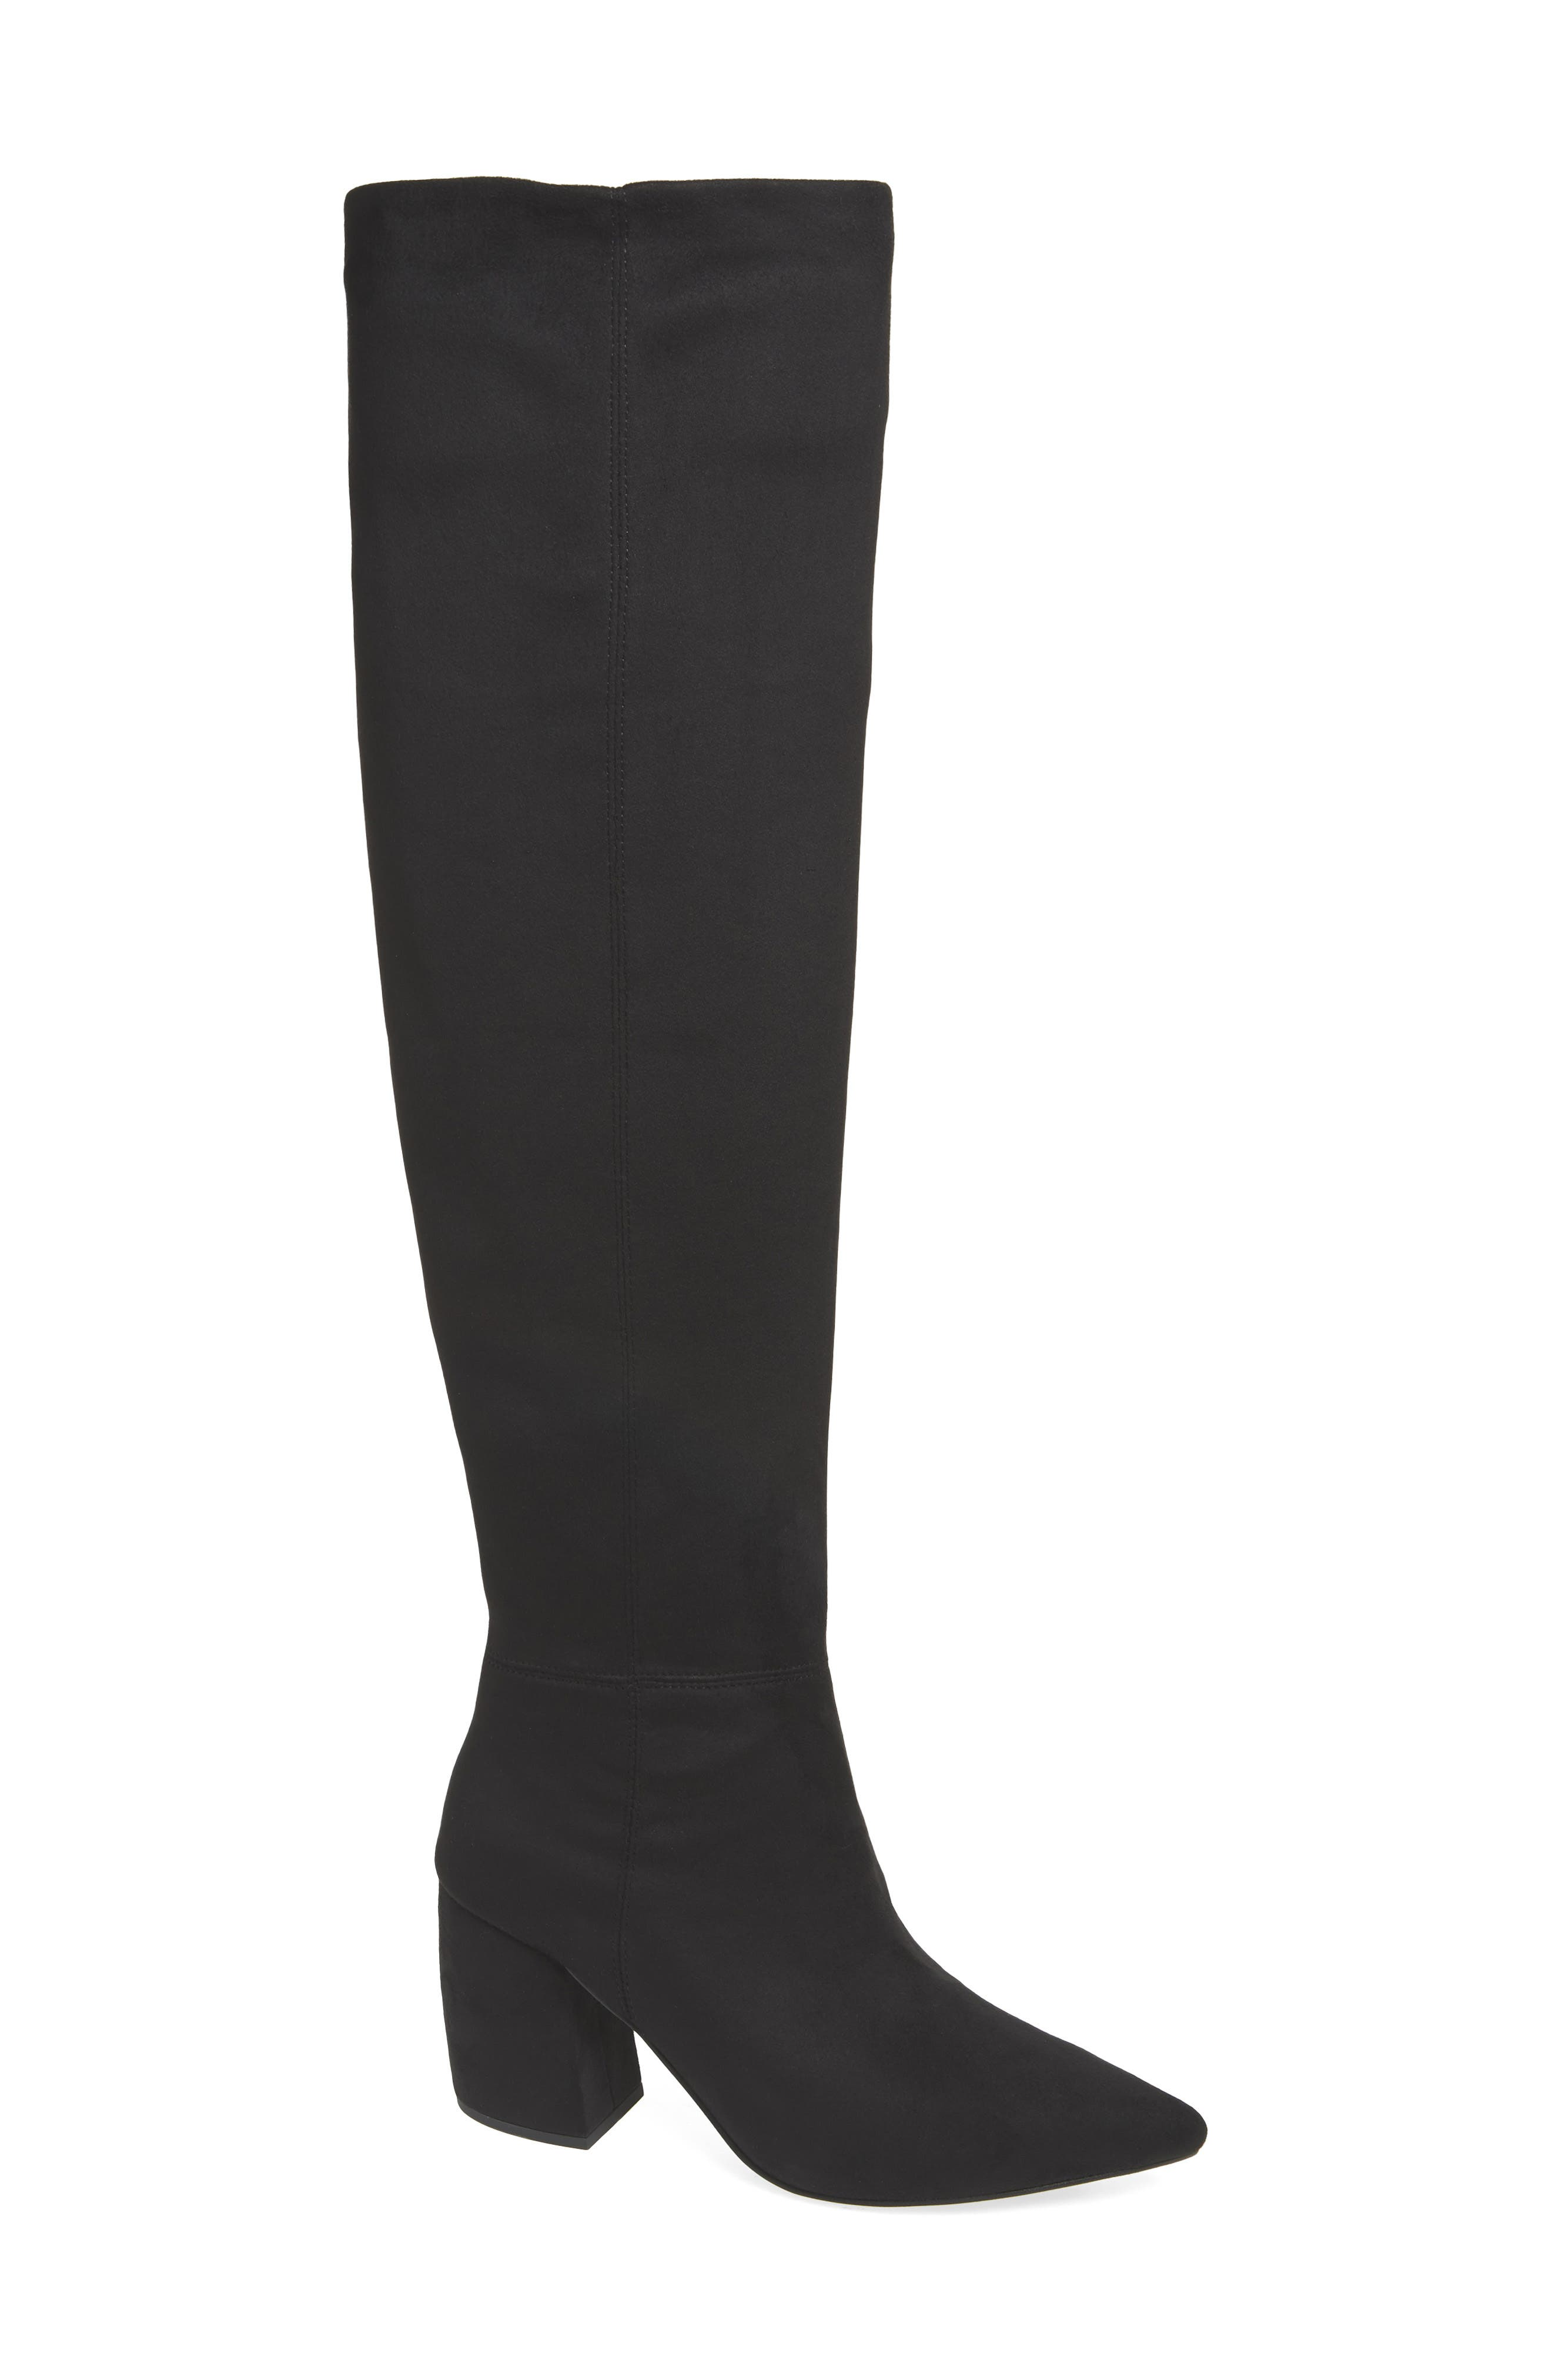 Final Slouch Over the Knee Boot,                         Main,                         color, BLACK SUEDE